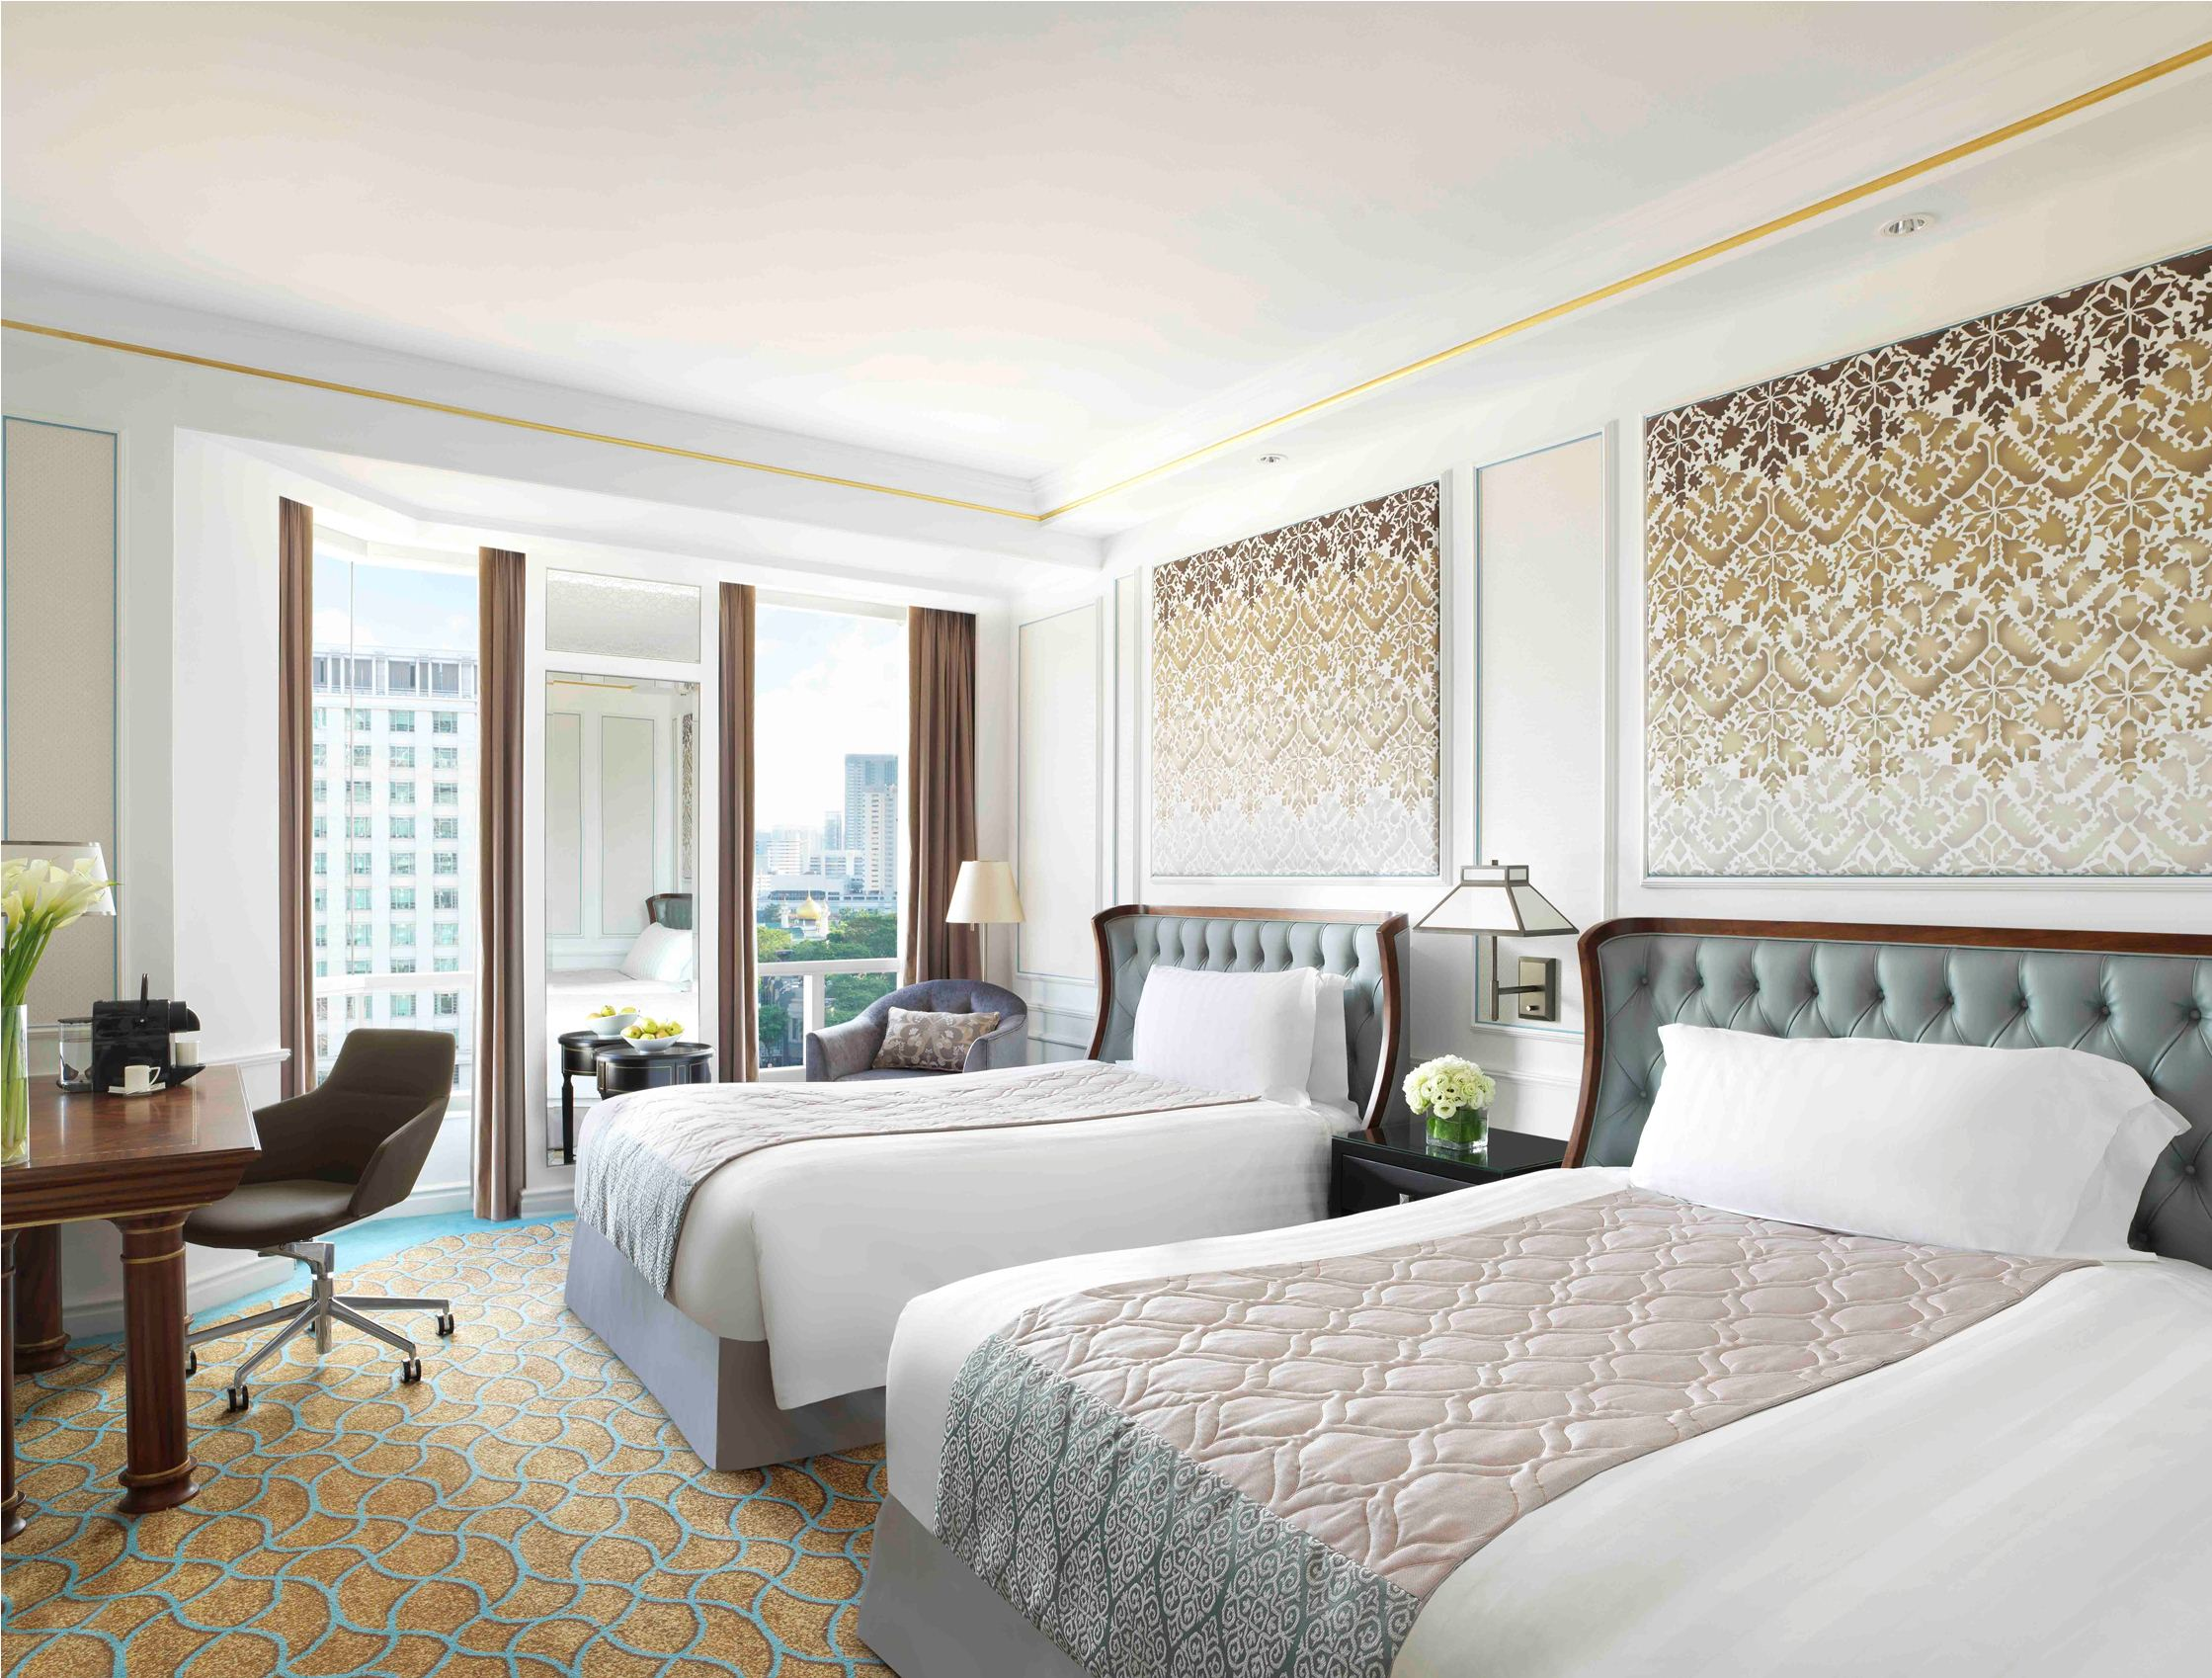 The newly renovated rooms at the Intercontinental Singapore are LOVE! Bright, relaxing and calming-- a complete makeover from when the hotel first opened in 1995. This is the Intercontinental Club Room with twin beds. (Photo courtesy of Intercontinental Singapore)